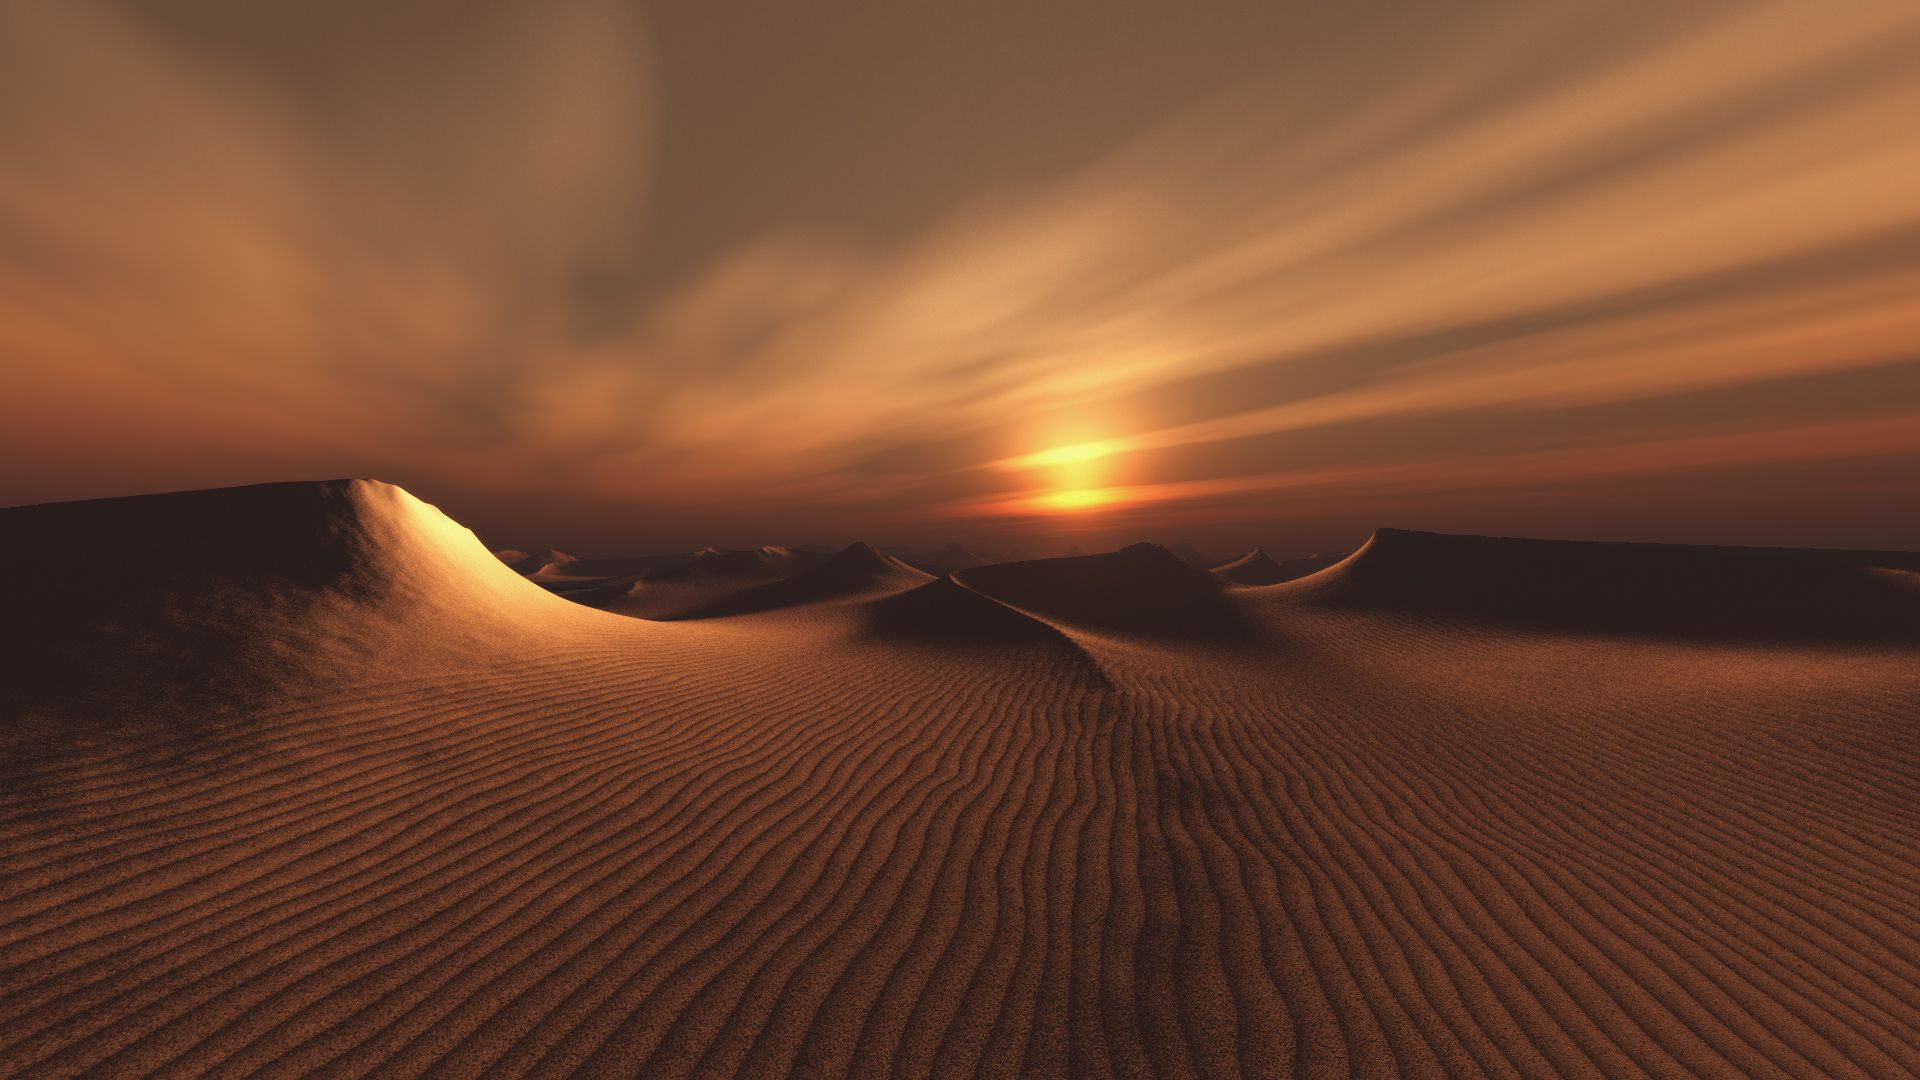 Desert Hd Wallpapers Top Free Desert Hd Backgrounds